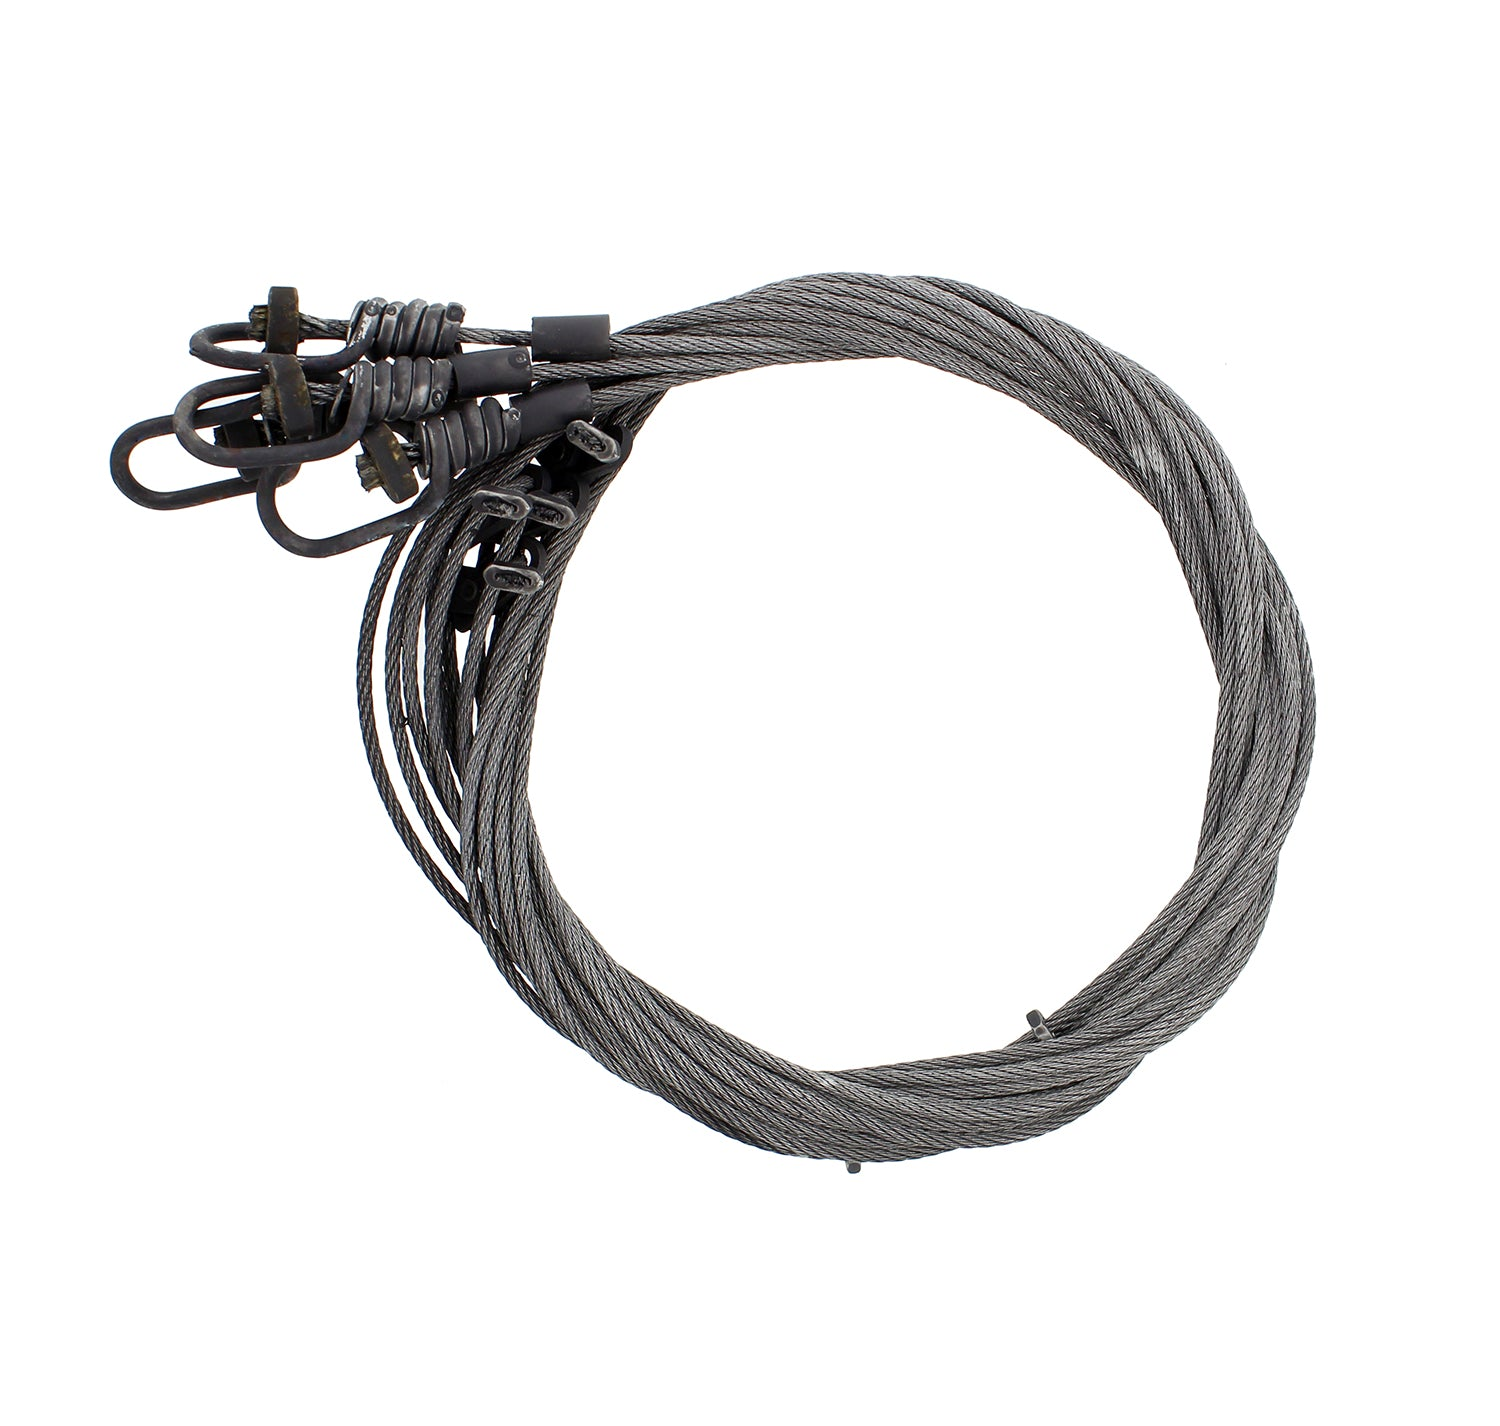 84� Inch Dyed Hog Snare Cable 4-Pack with Camlock